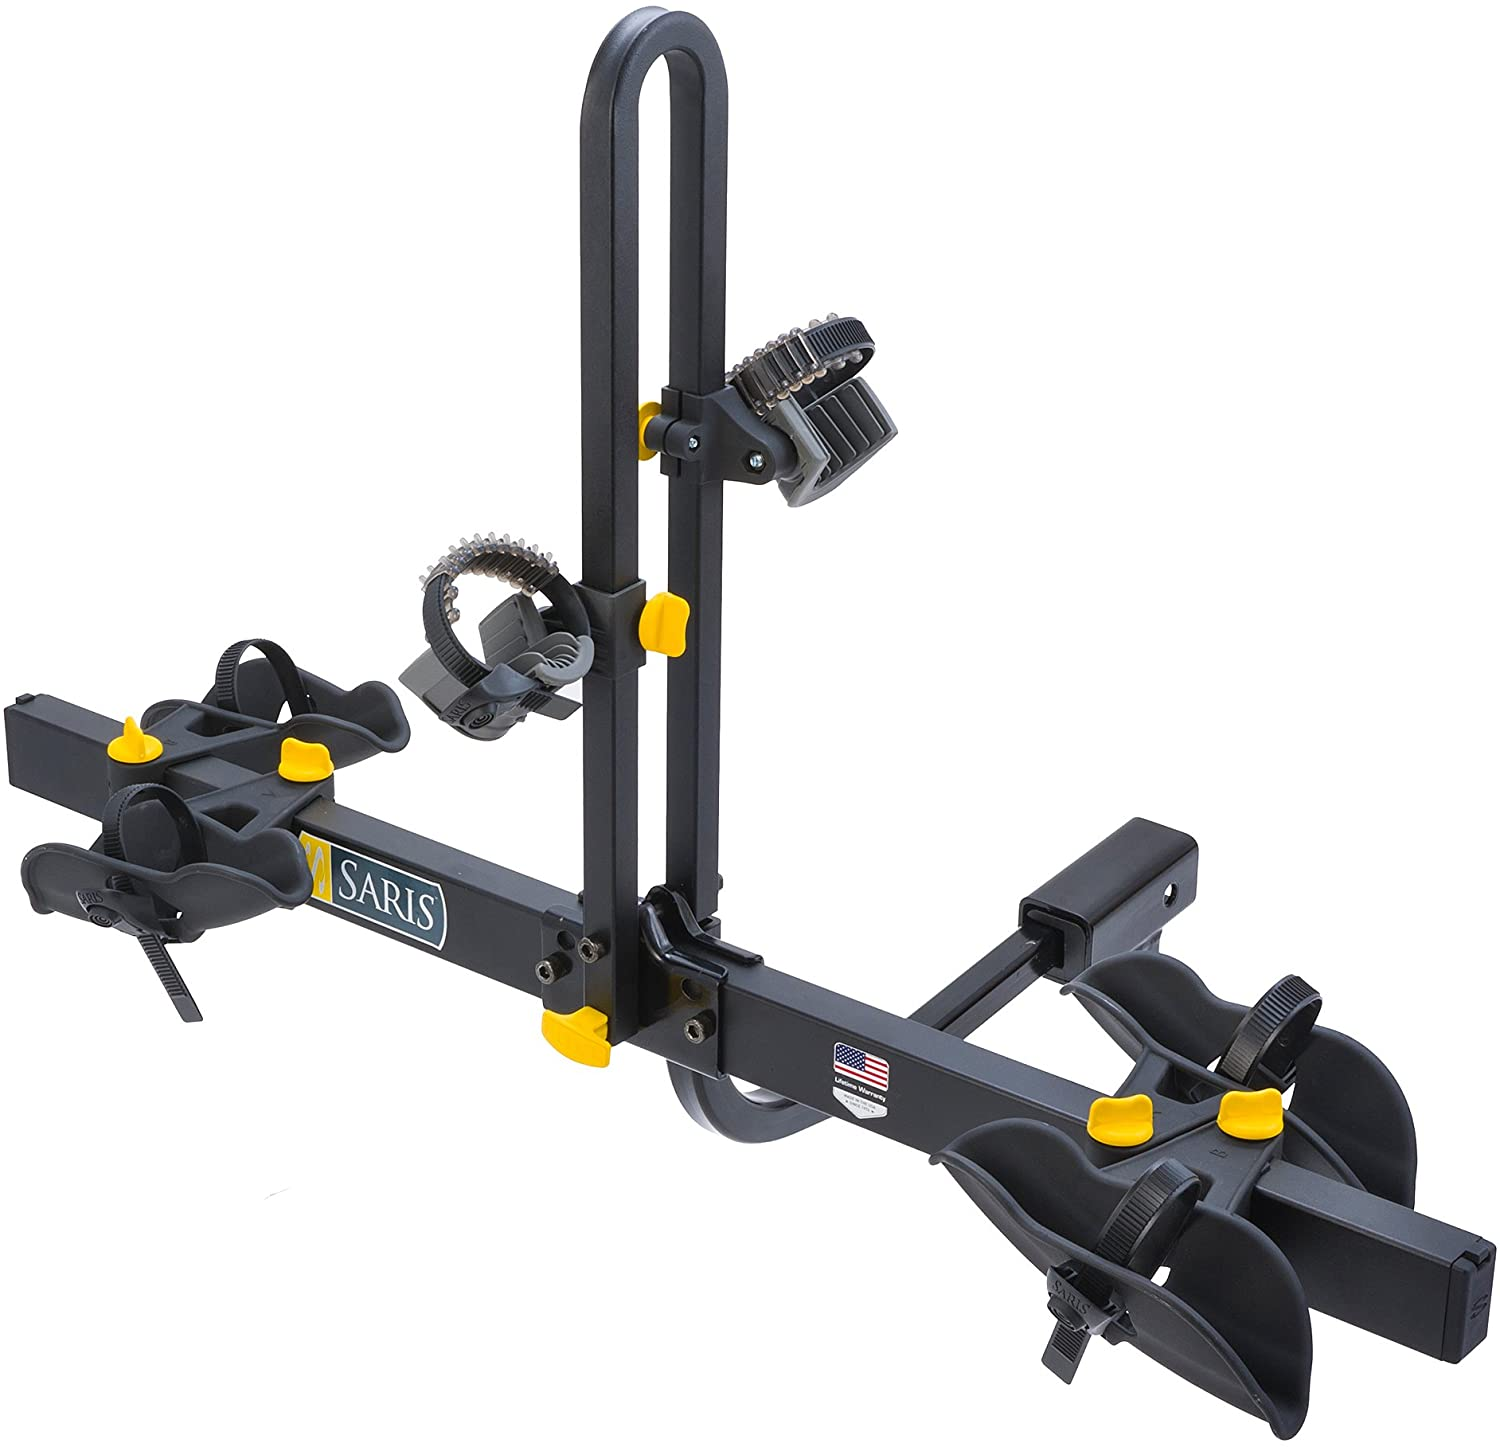 Saris Freedom Bike Hitch and Spare Tire Car Rack